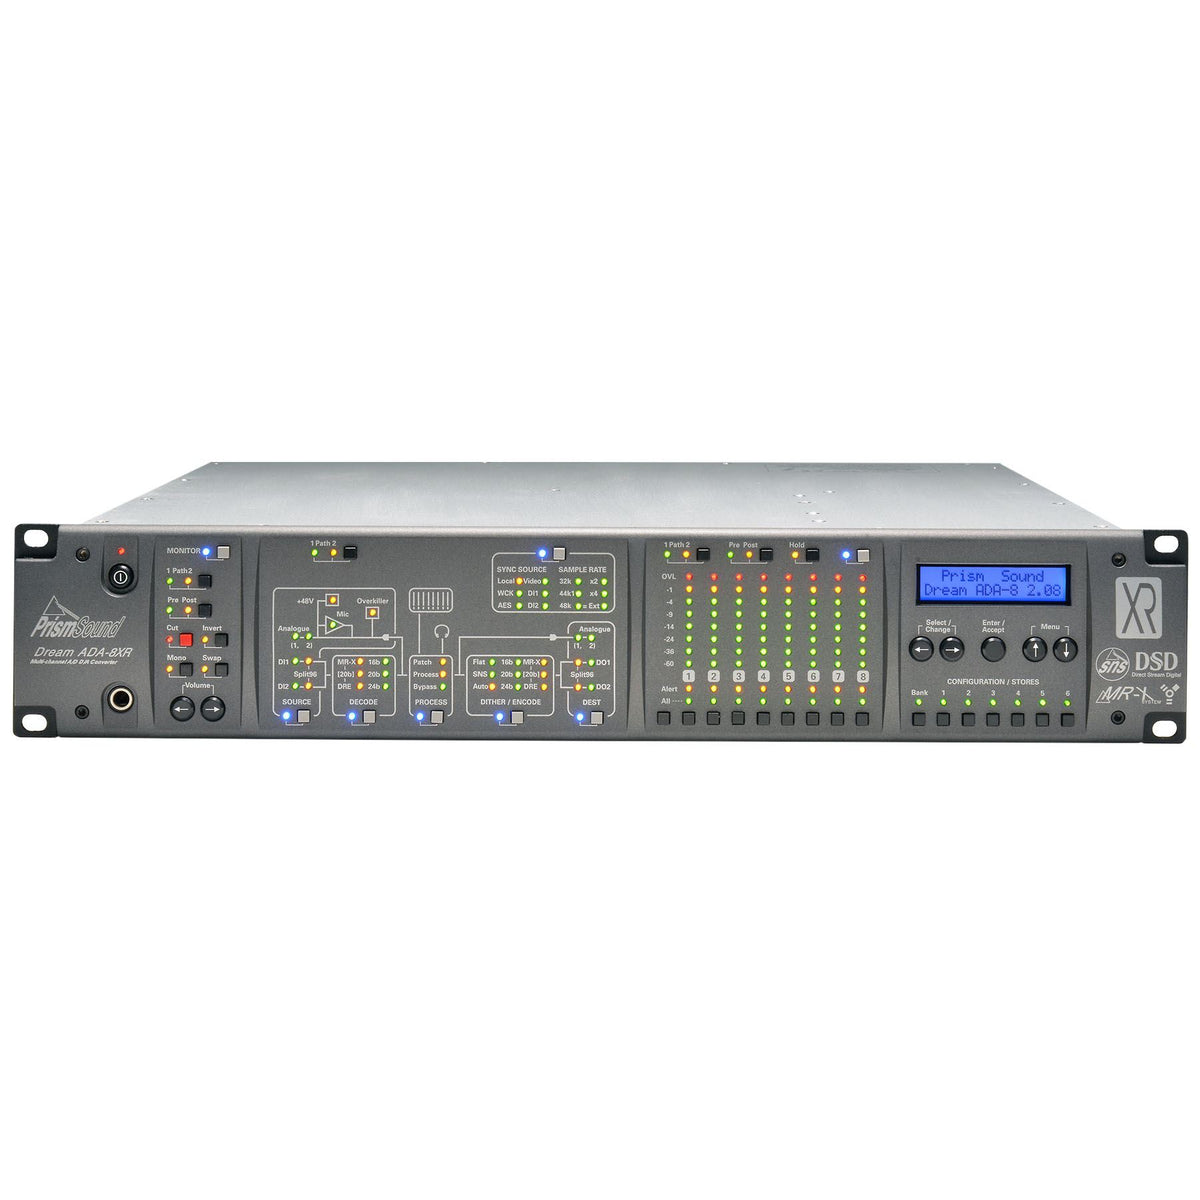 Prism Audio Dream Series ADA-8XR with 8 channels of DA/AD Conversion with Firewire & AES Digitial I/O Cards